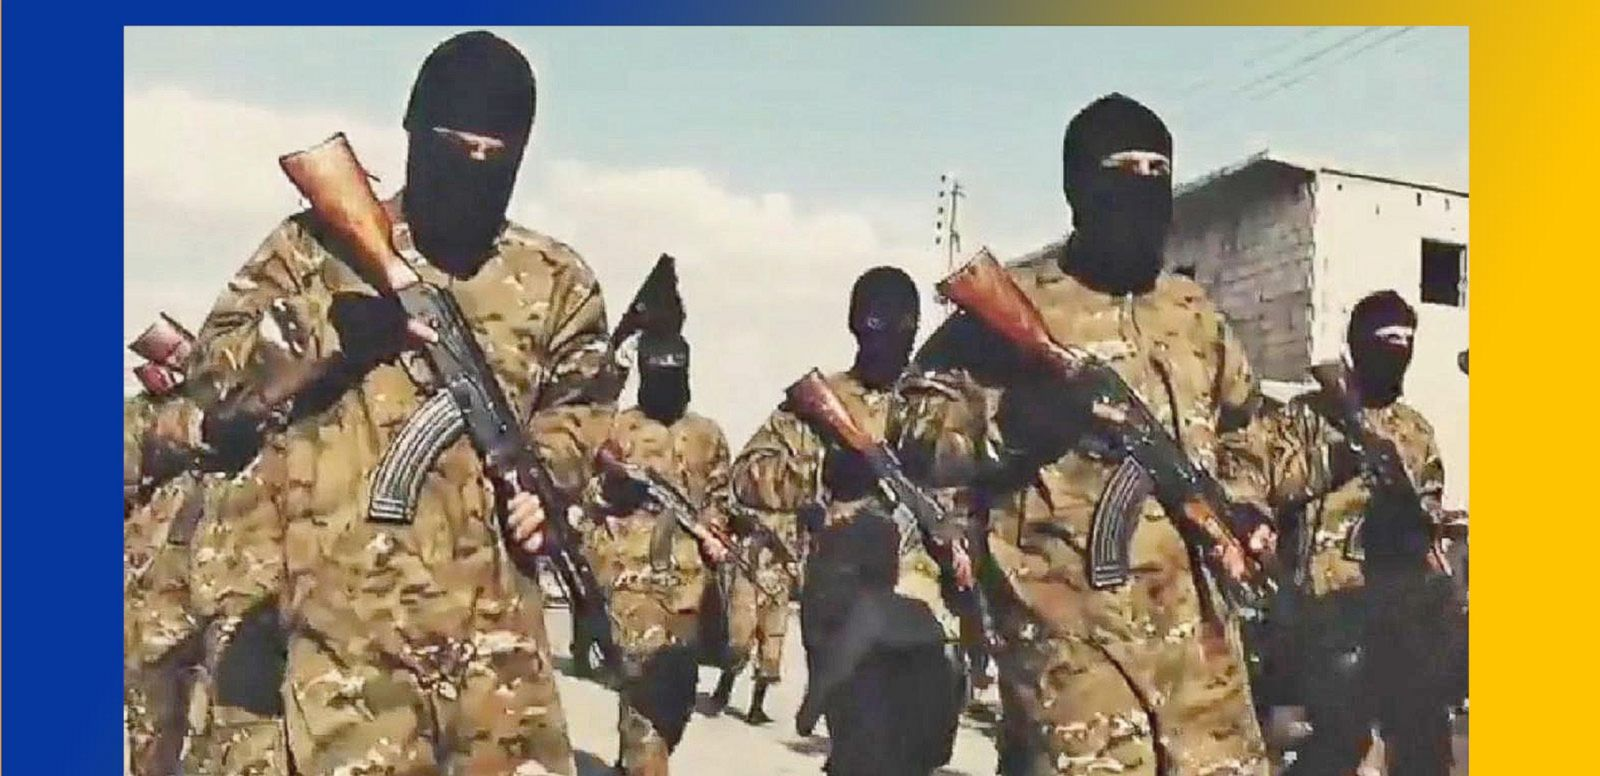 VIDEO: ISIS Suspected in Istanbul Airport Attack